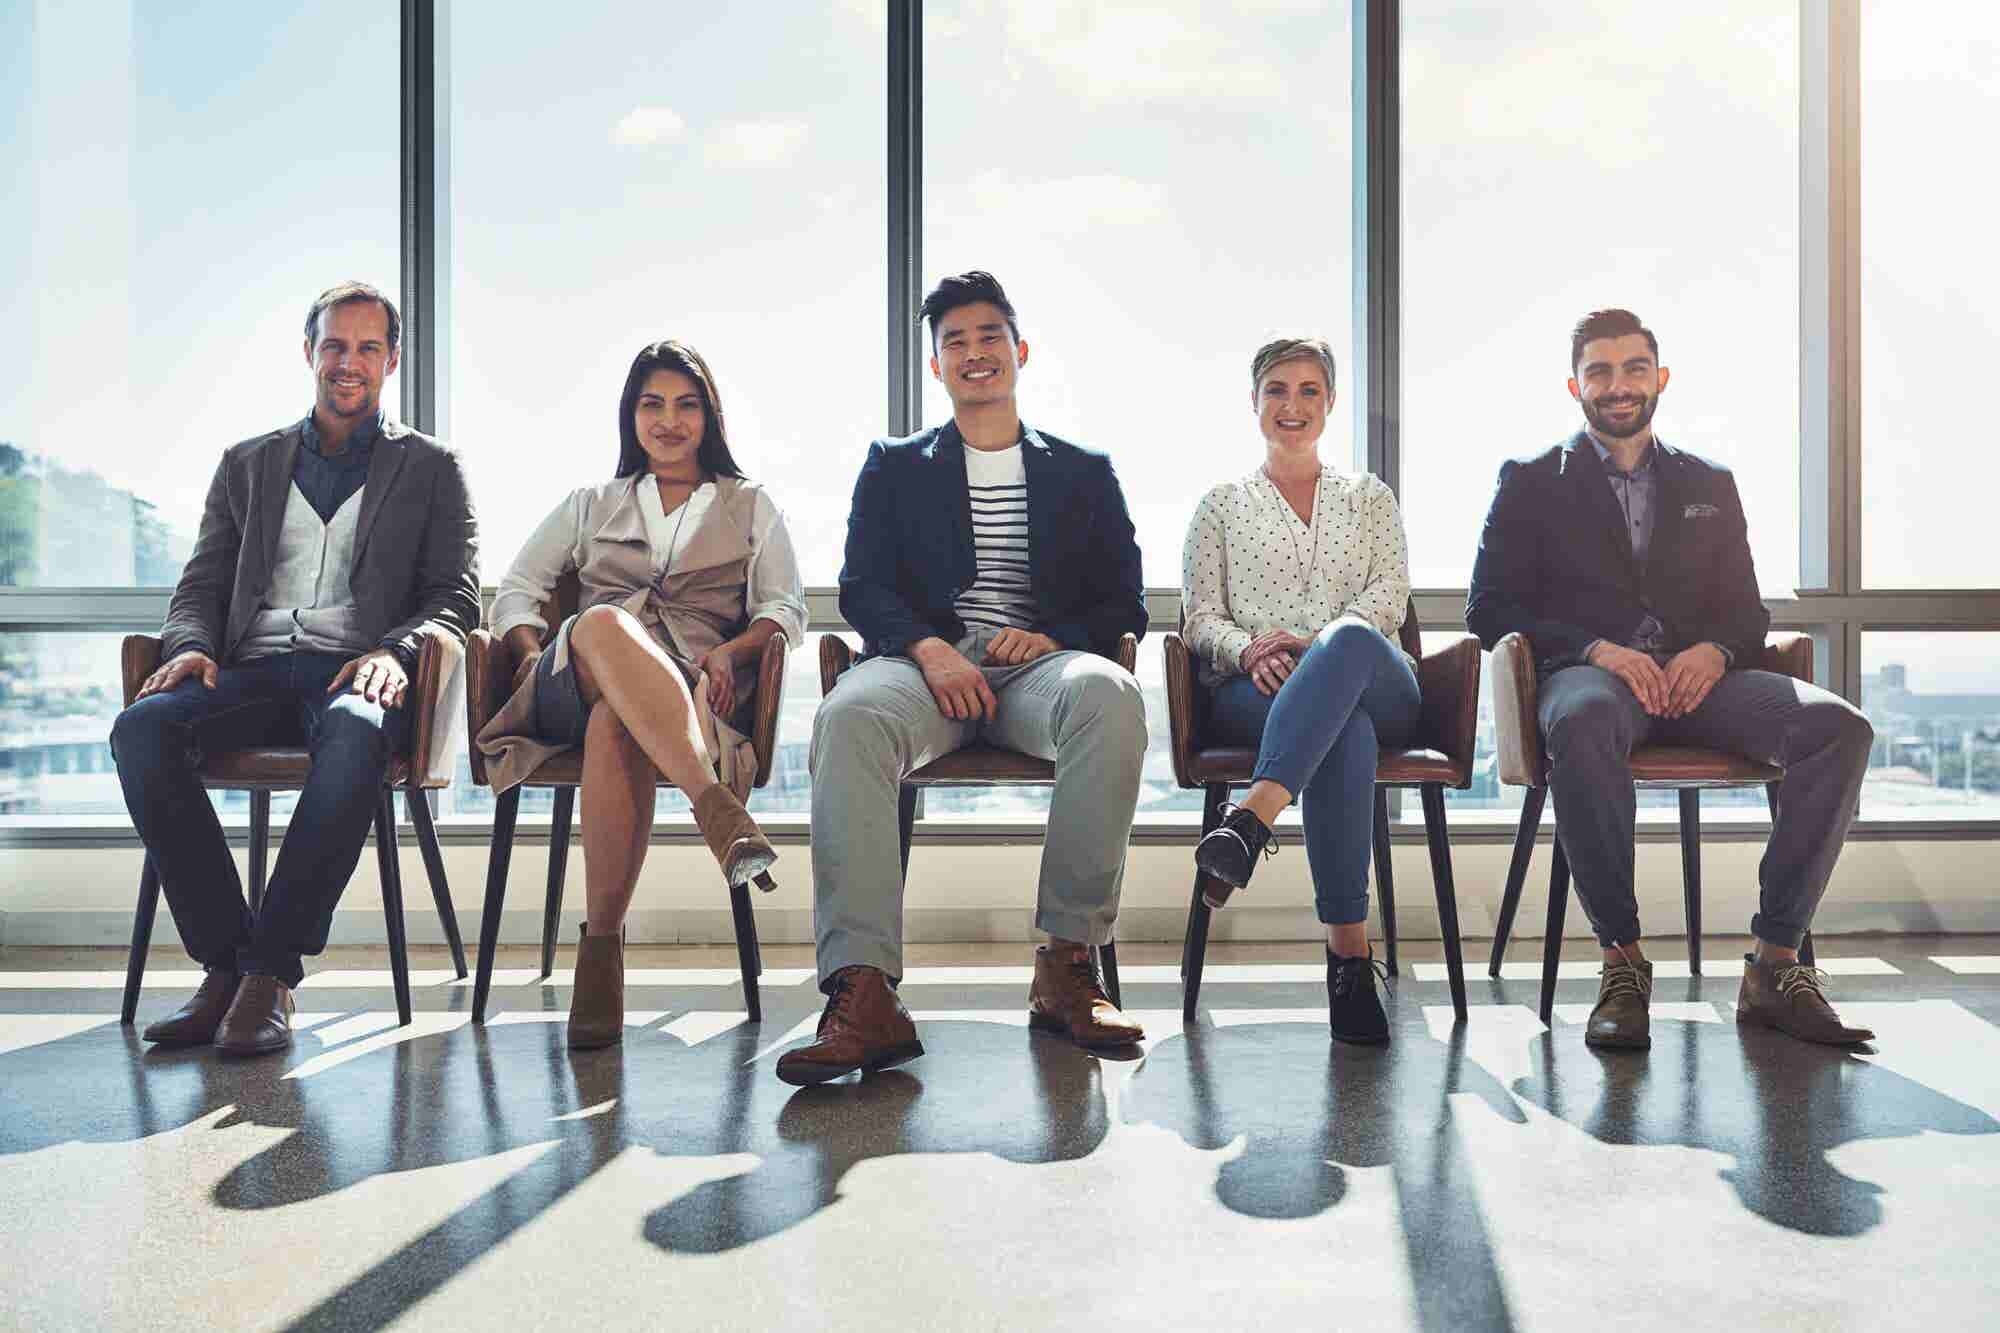 Use These Steps to Hire the Best Team Every Time